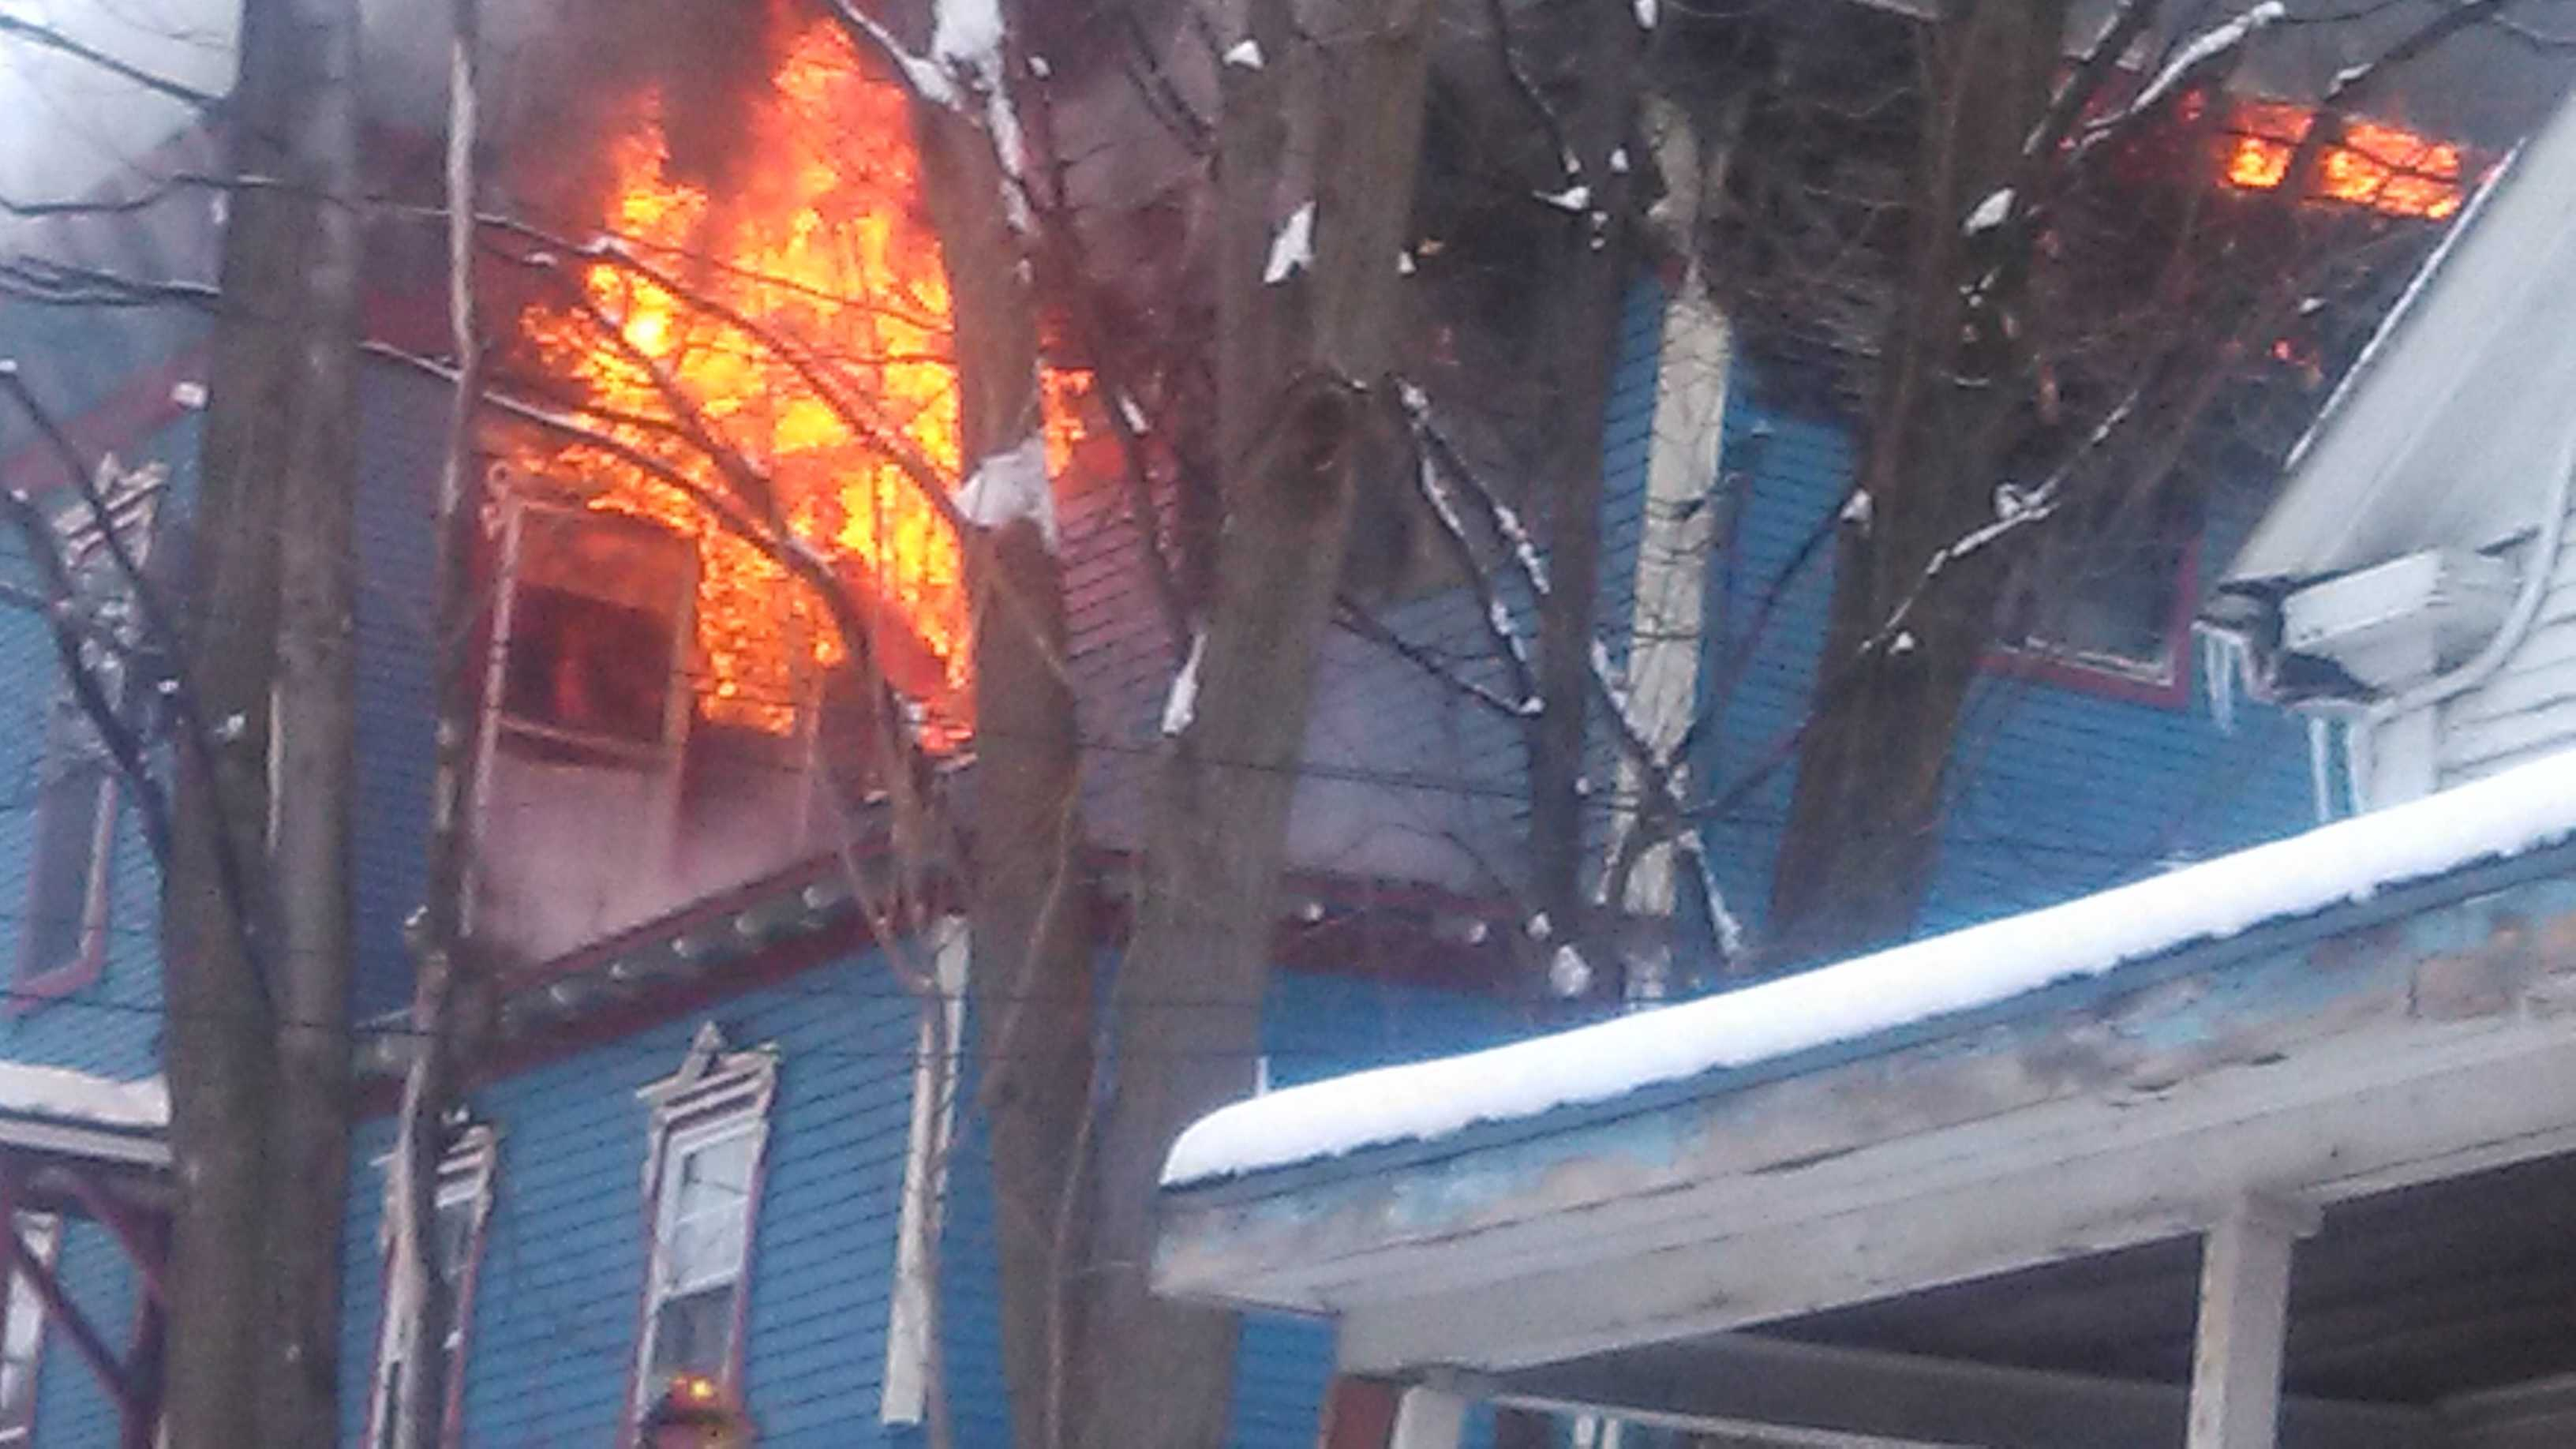 Fire at a four-apartment building on the corner of Main and Morton streets in Malone, New York.